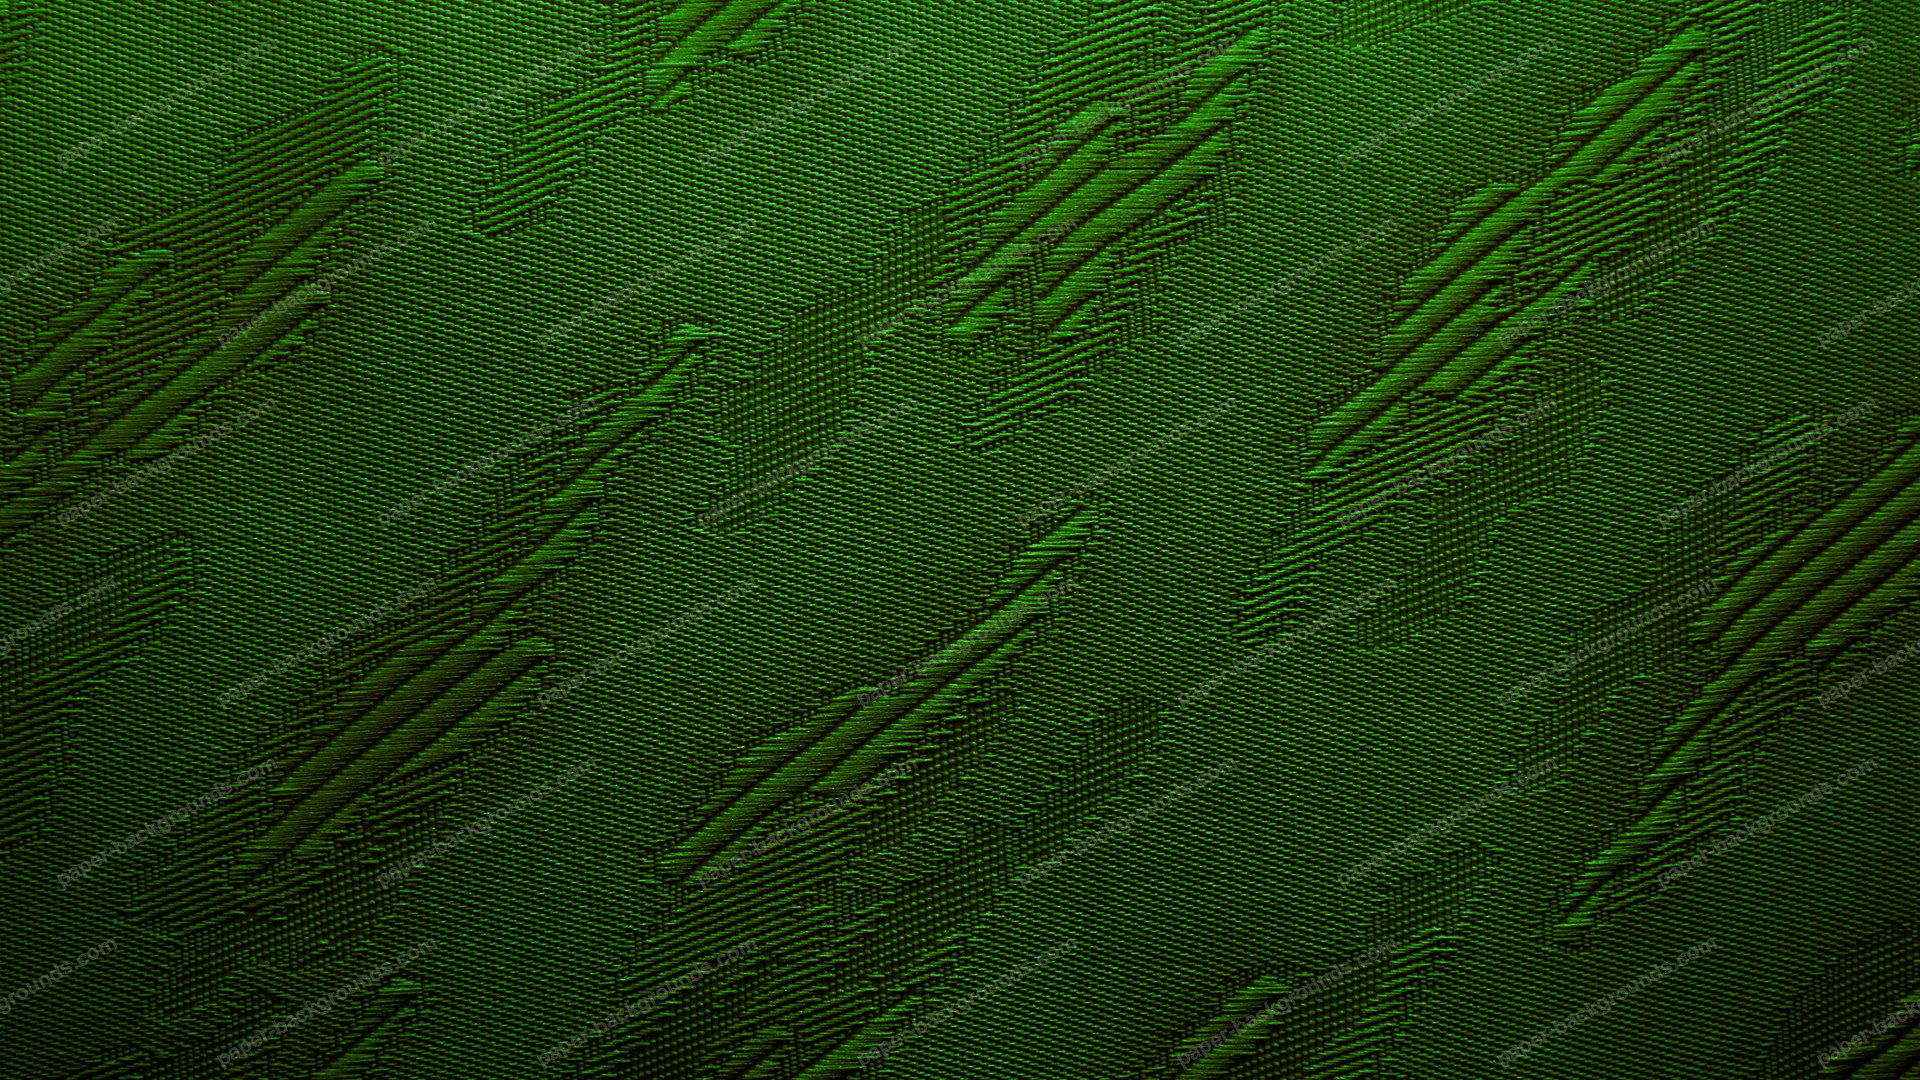 Dark Green Canvas Texture Background HD 1920 x 1080p